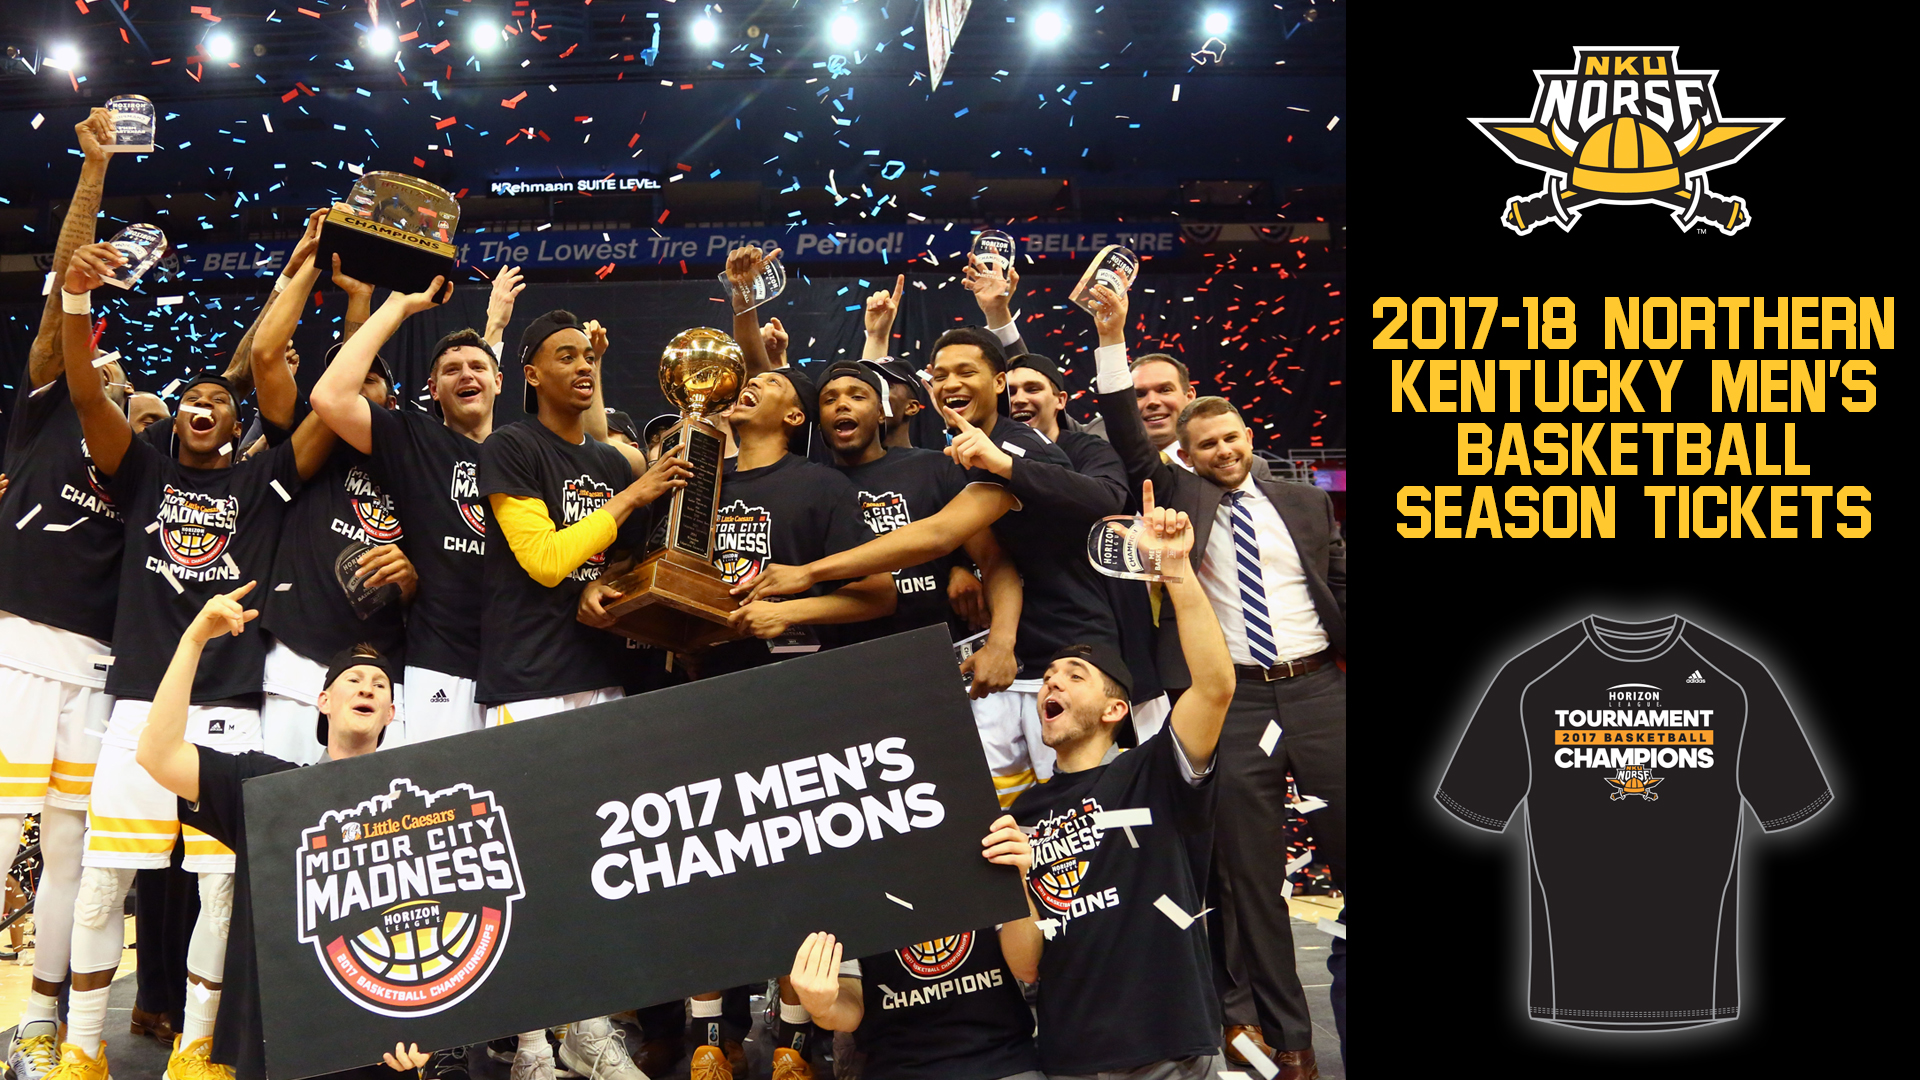 2017 18 Uk Basketball Schedule Now Complete: 2017-18 Season Tickets Now Available For Men's Basketball